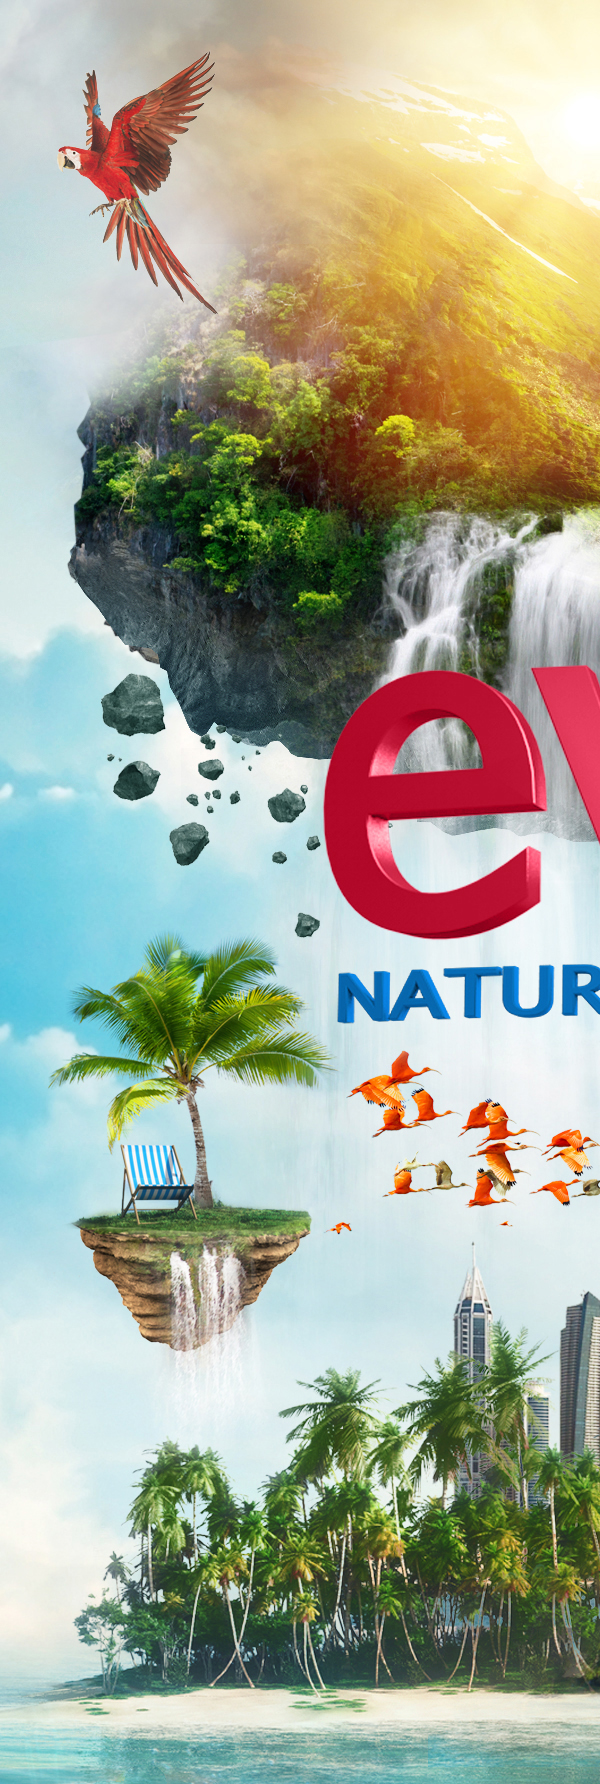 Evian Natural Spring water Evian photoshop howww award CaseStudy